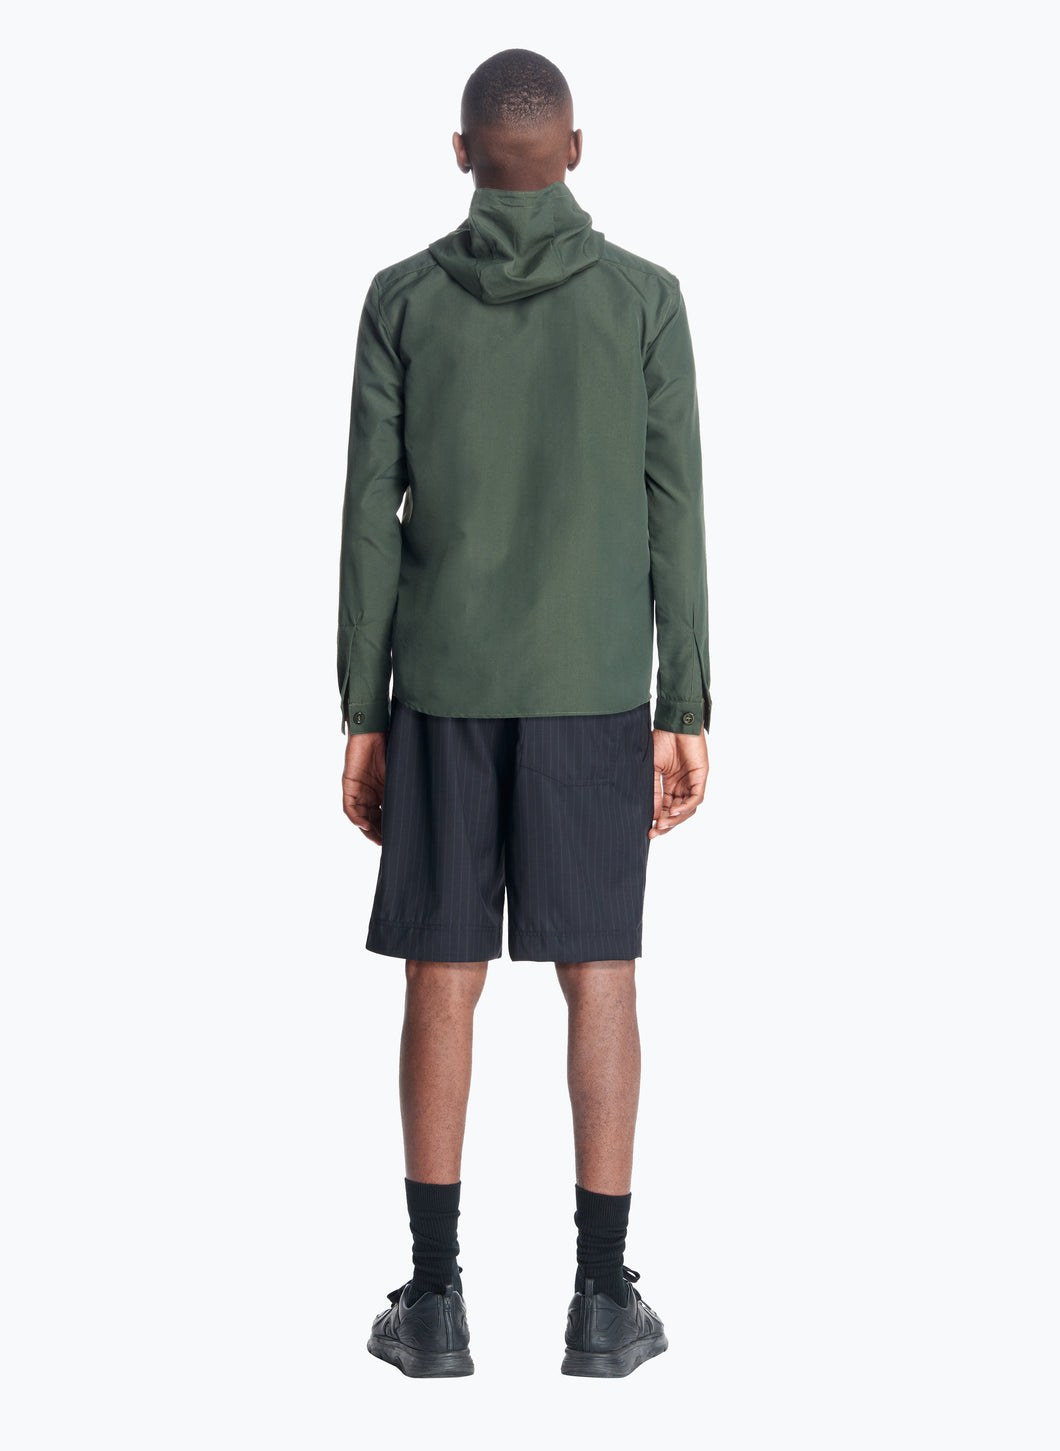 Hooded Overshirt in Olive Technical Ottoman